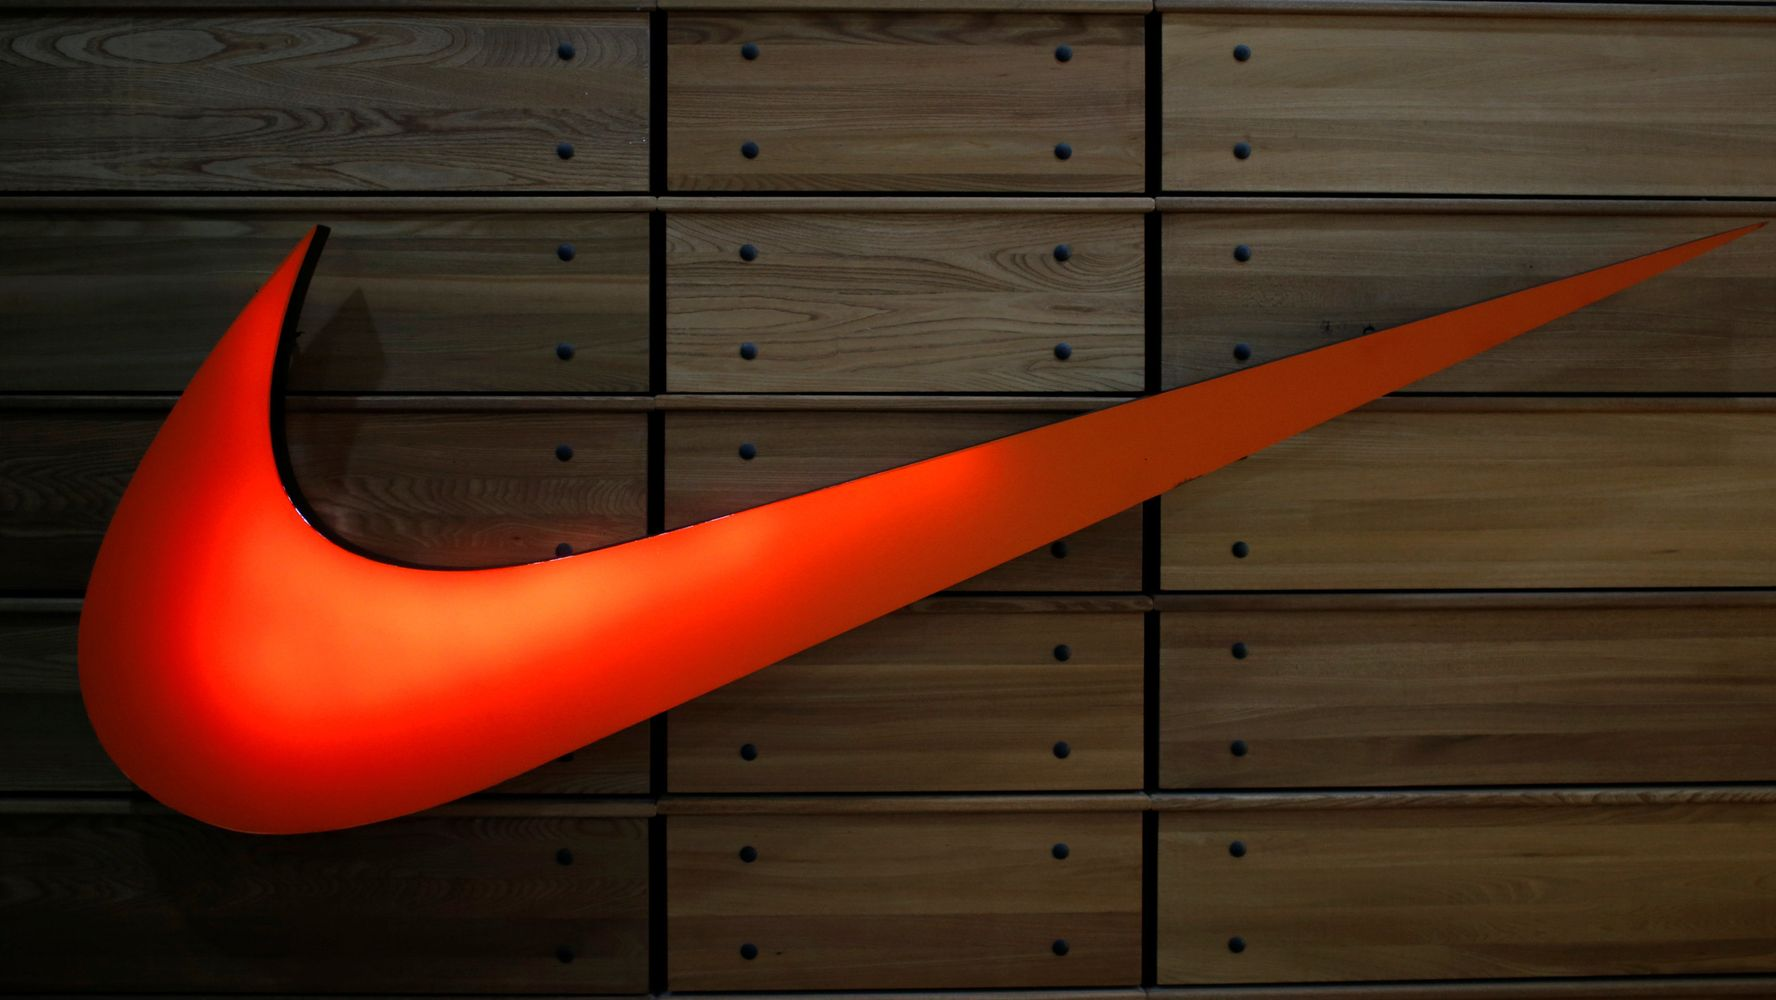 Colgar sólido sombra  Nike Agrees To Help Watchdog Group Inspect Its Overseas Factories | HuffPost